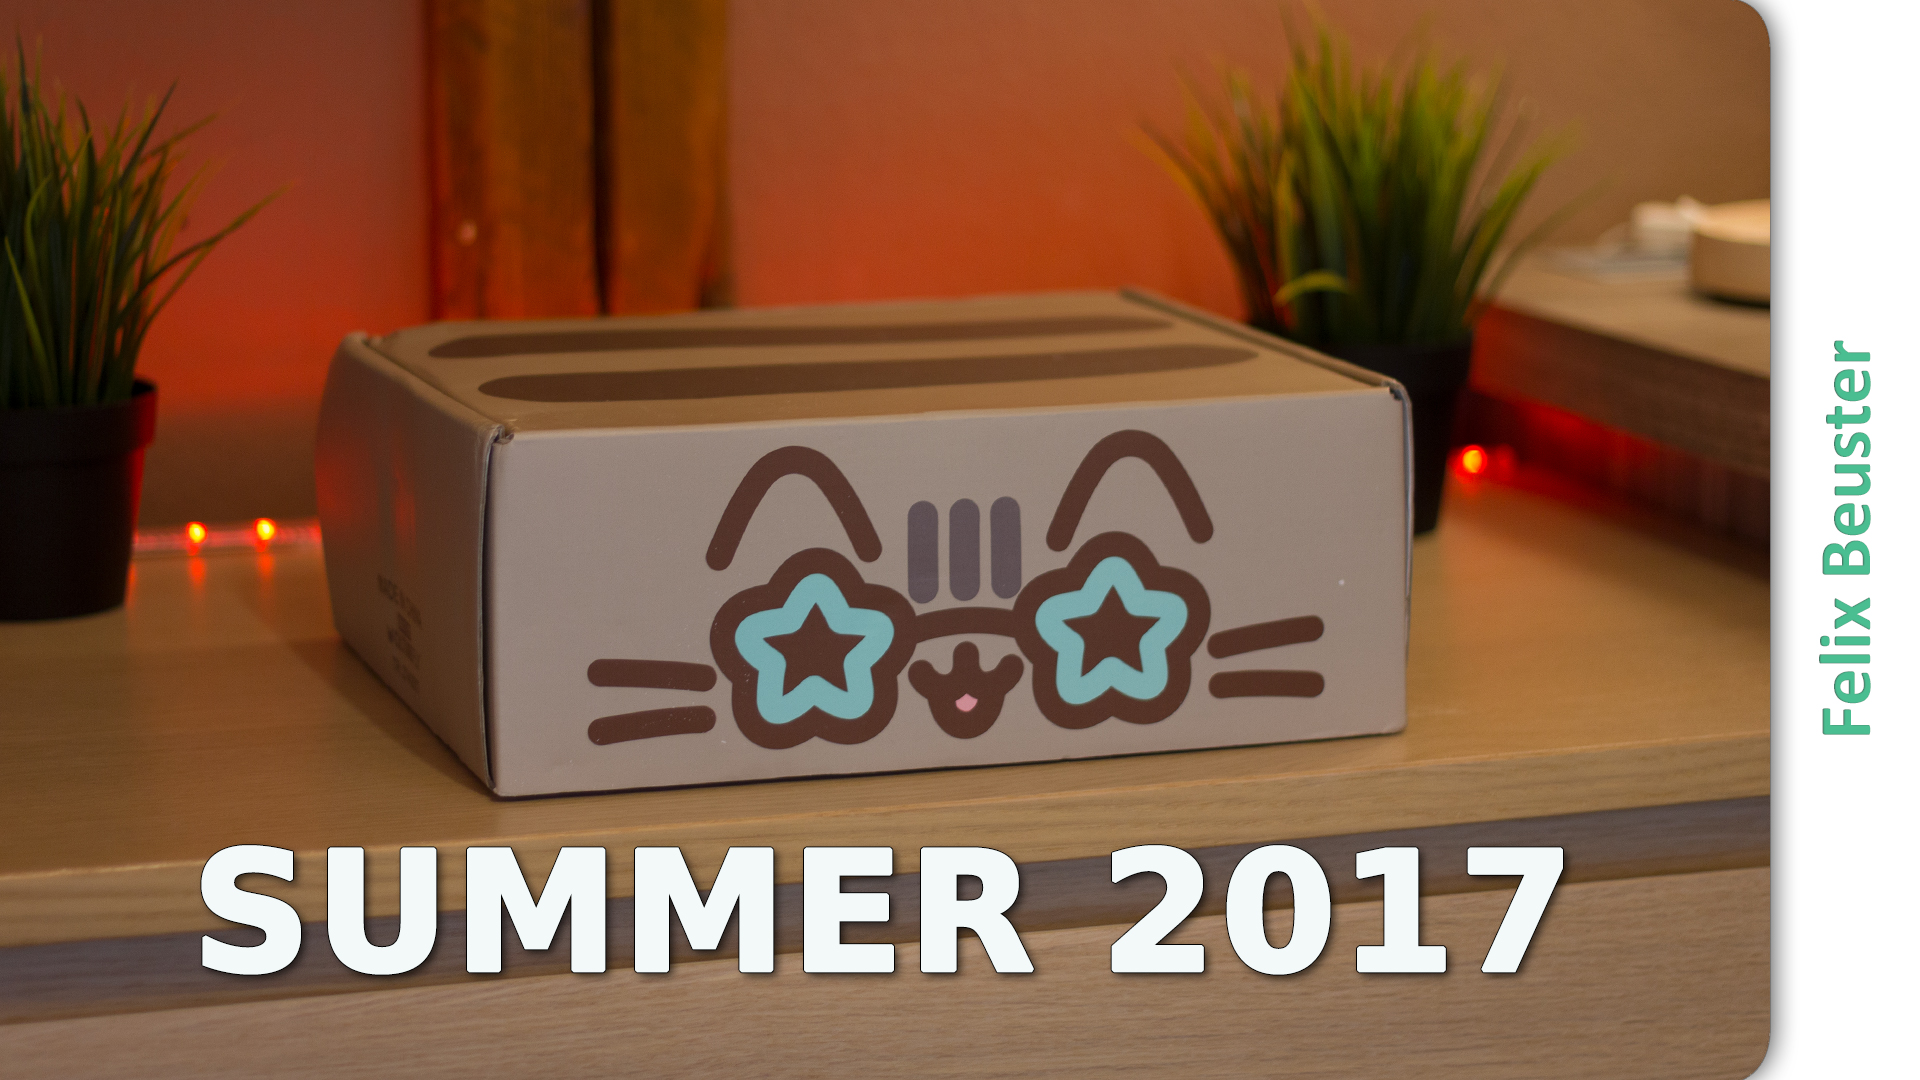 Pusheen Box Sommer 2017 - Unboxing und Review